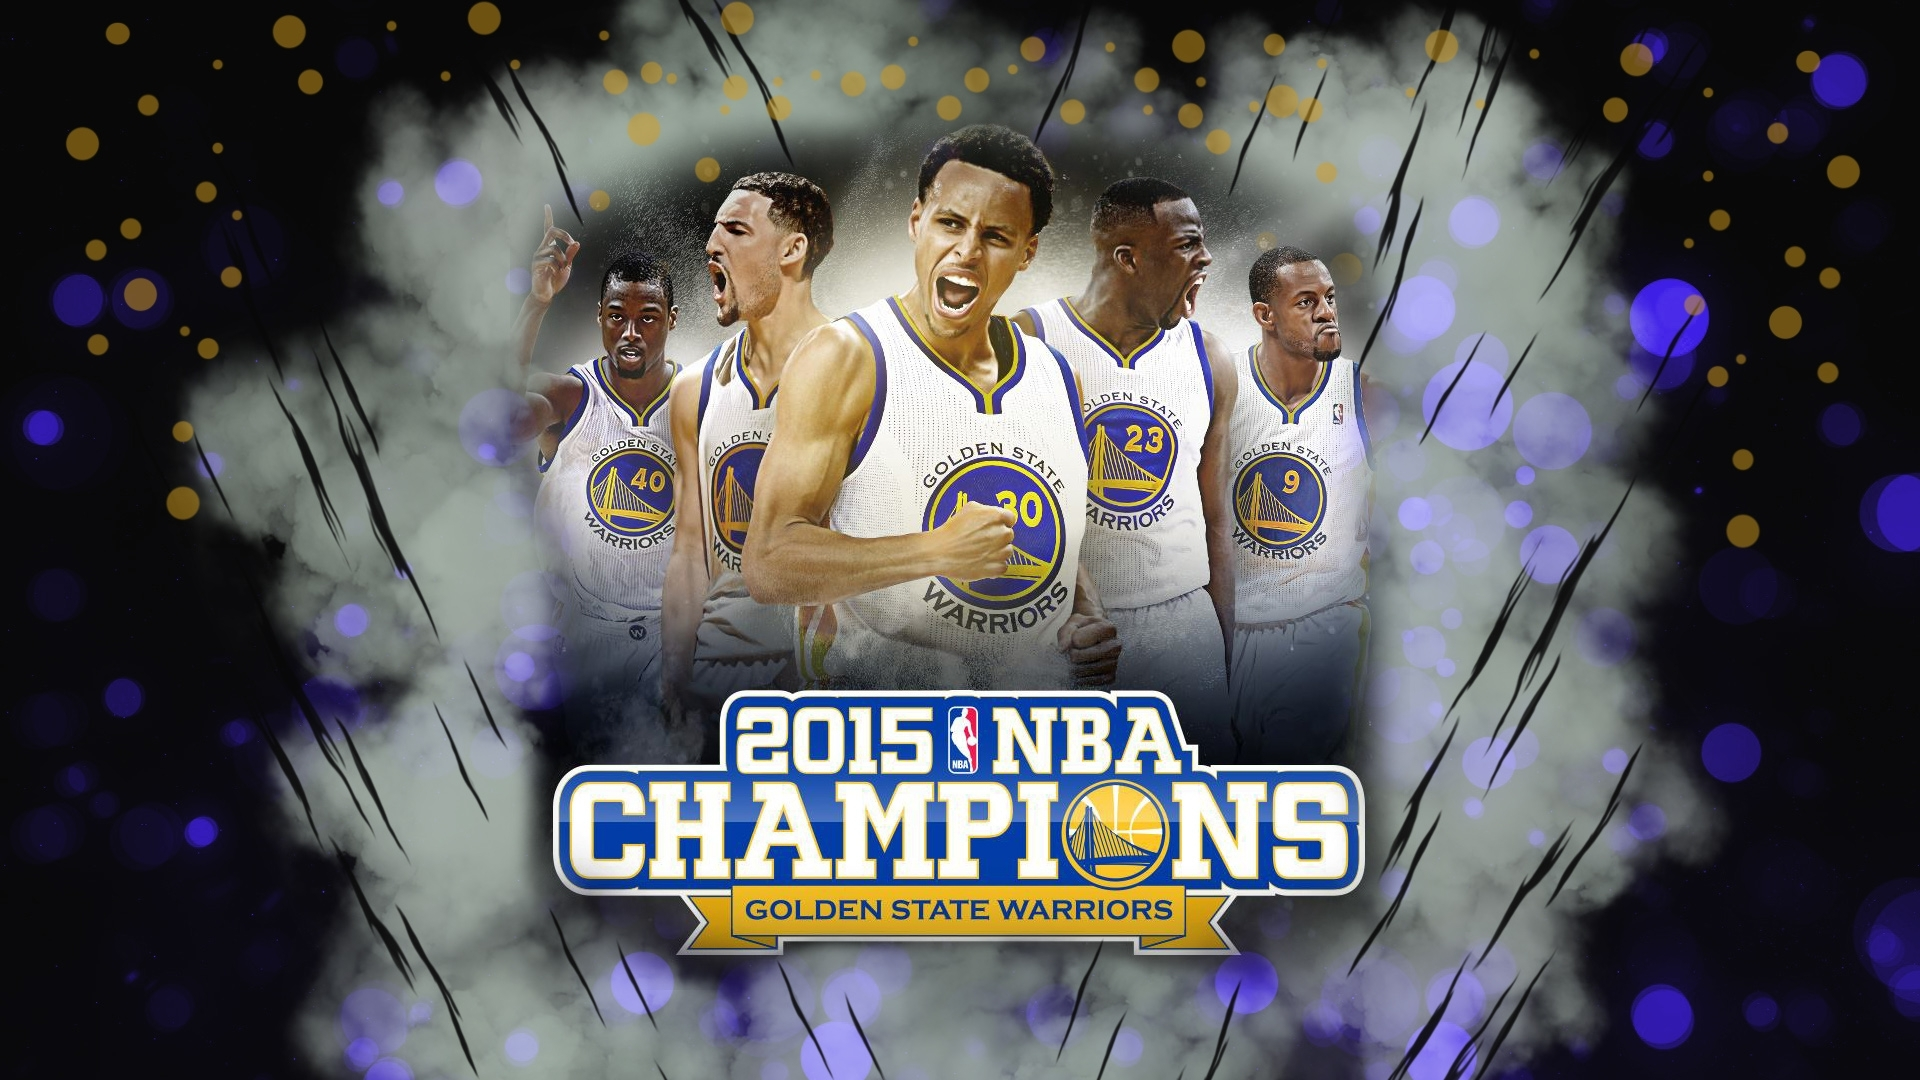 golden-state-warriors-2015-nba-champs-header - gigaré lifestyle magazine